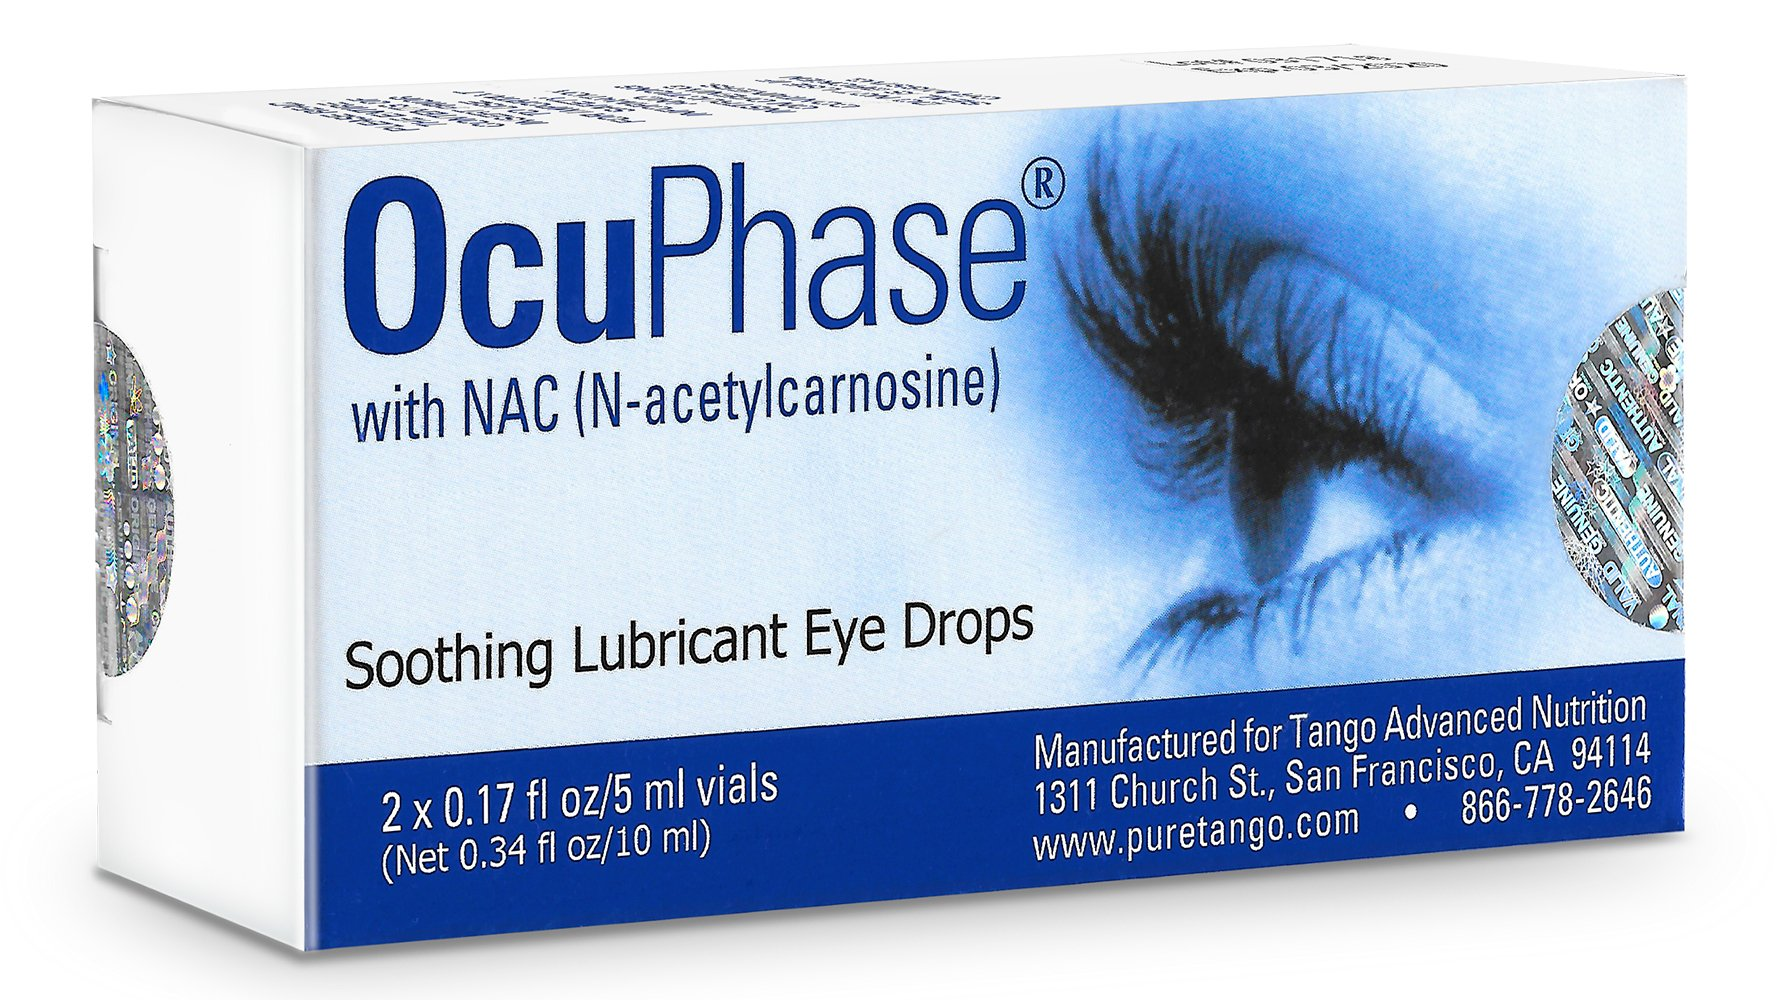 OcuPhase Soothing Lubricant Eye Drops with NAC (N-Acetylcarnosine), 2 x 5 Milliliter Vials